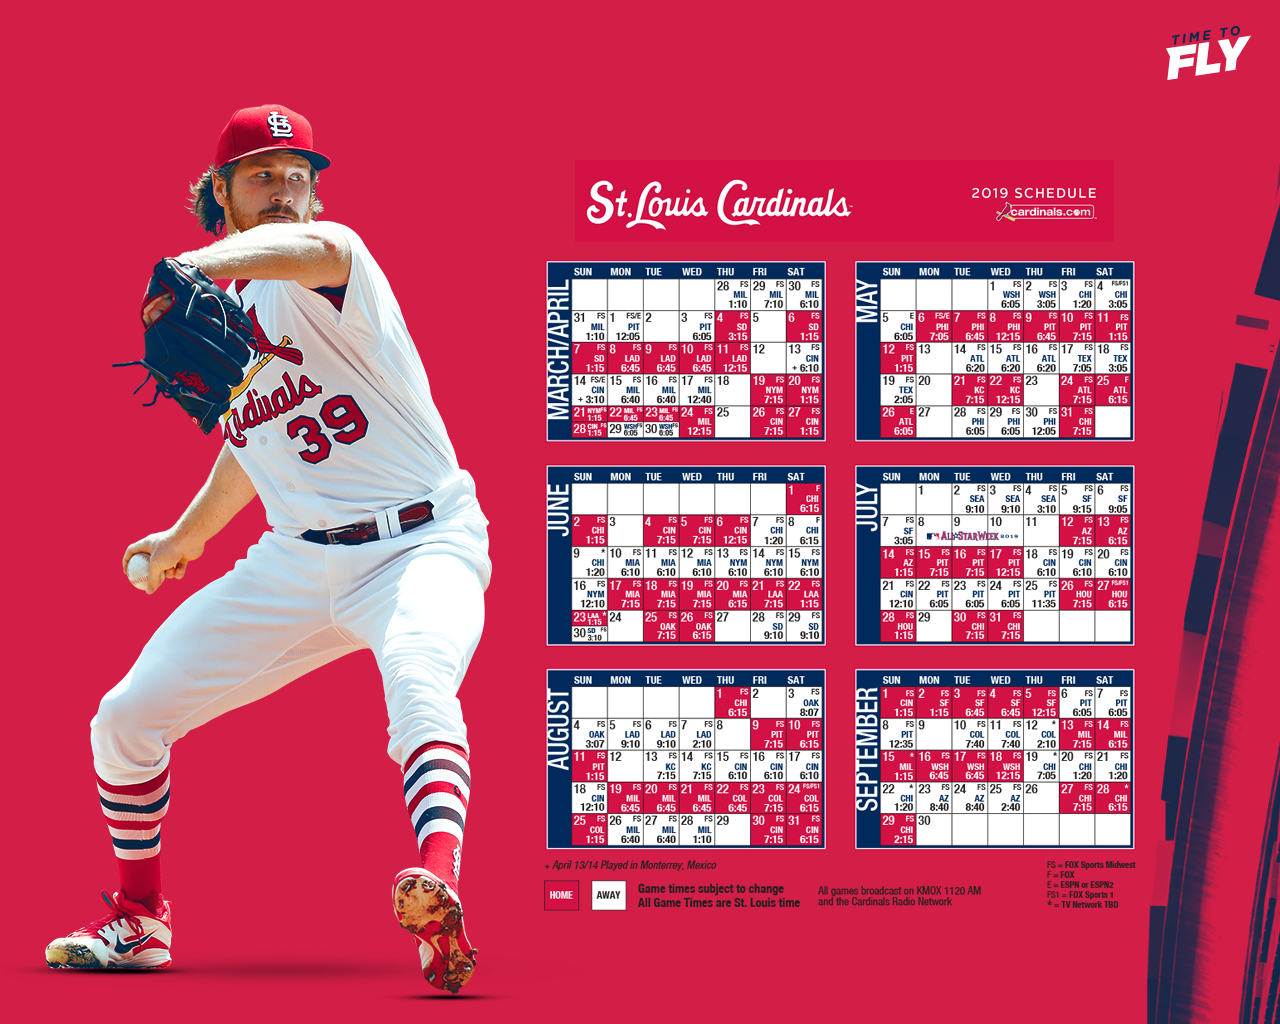 image about St Louis Cardinals Printable Schedule referred to as Desktop Wallpaper St. Louis Cardinals